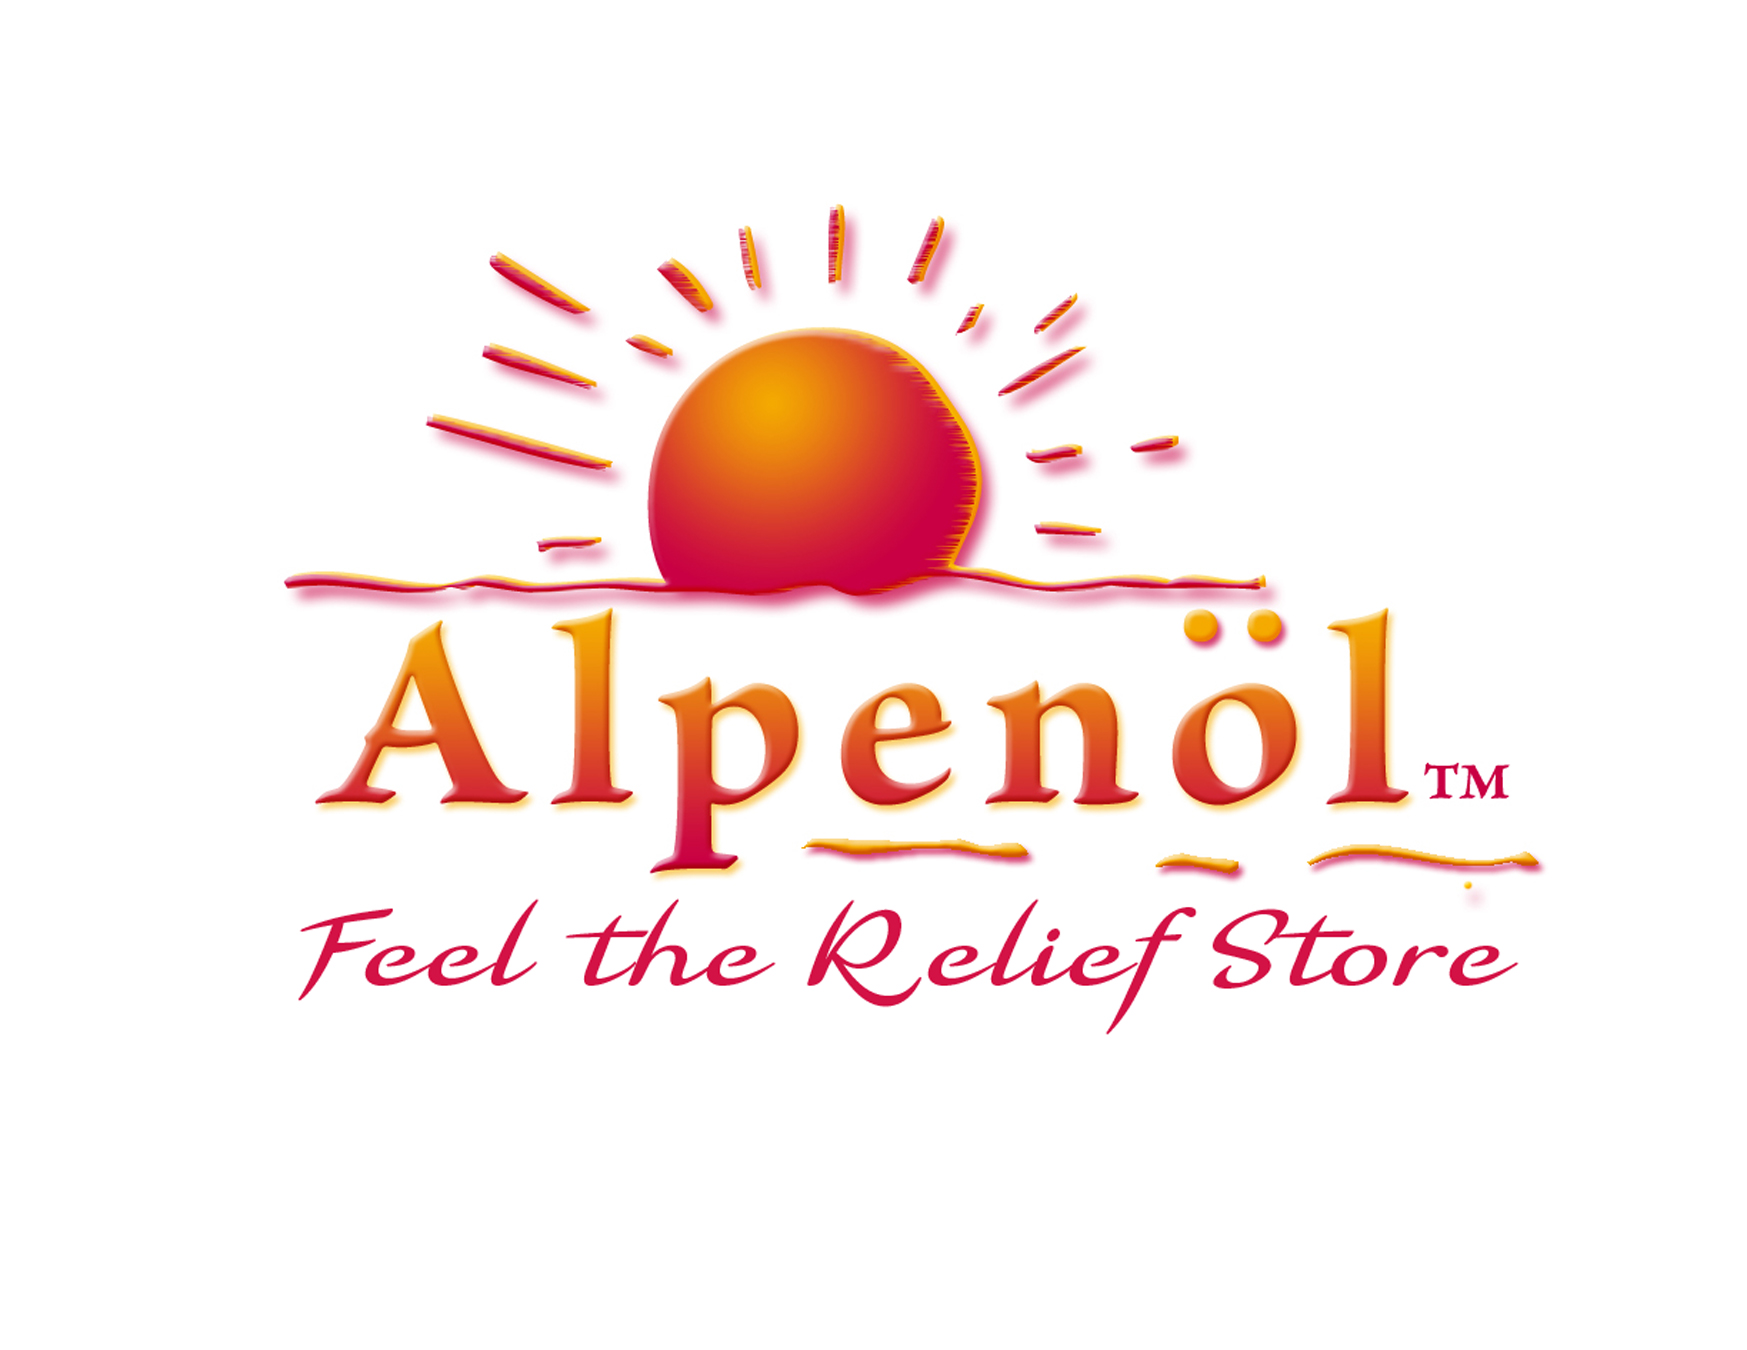 Logo-Alpenol-Feel-the-Relief.jpg